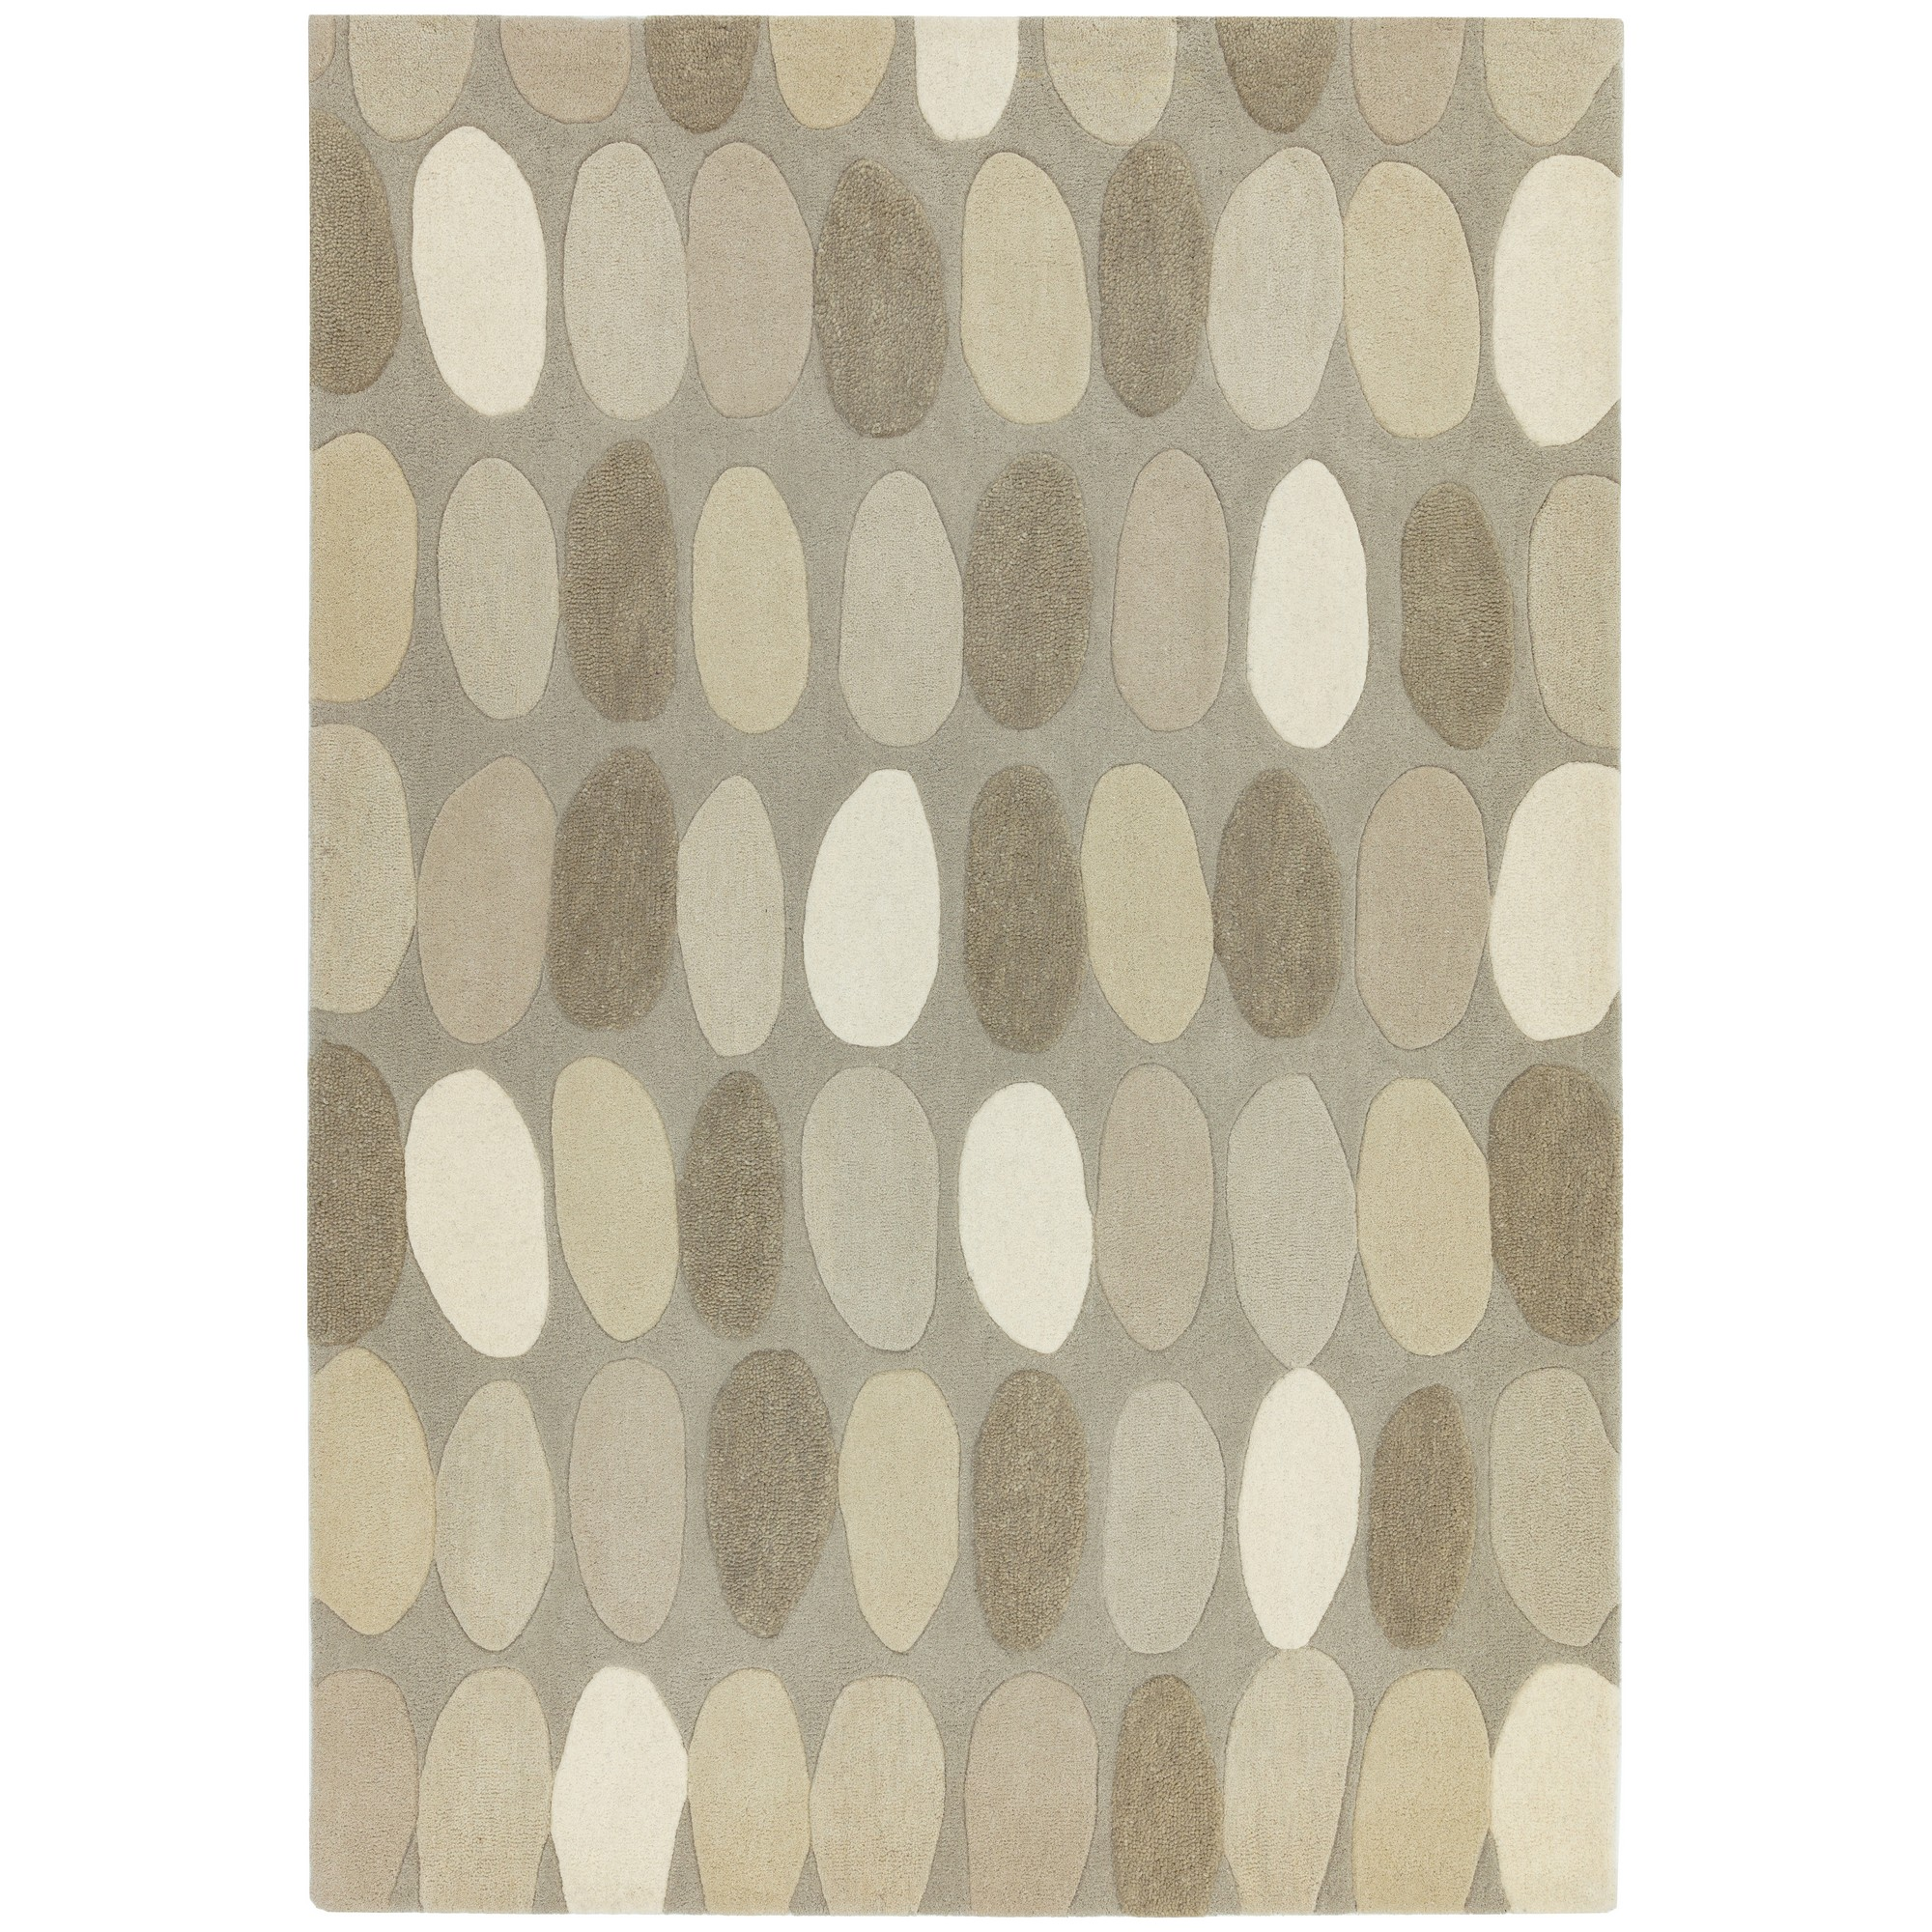 Matrix Sofia Rugs MAX31 Natural Beige